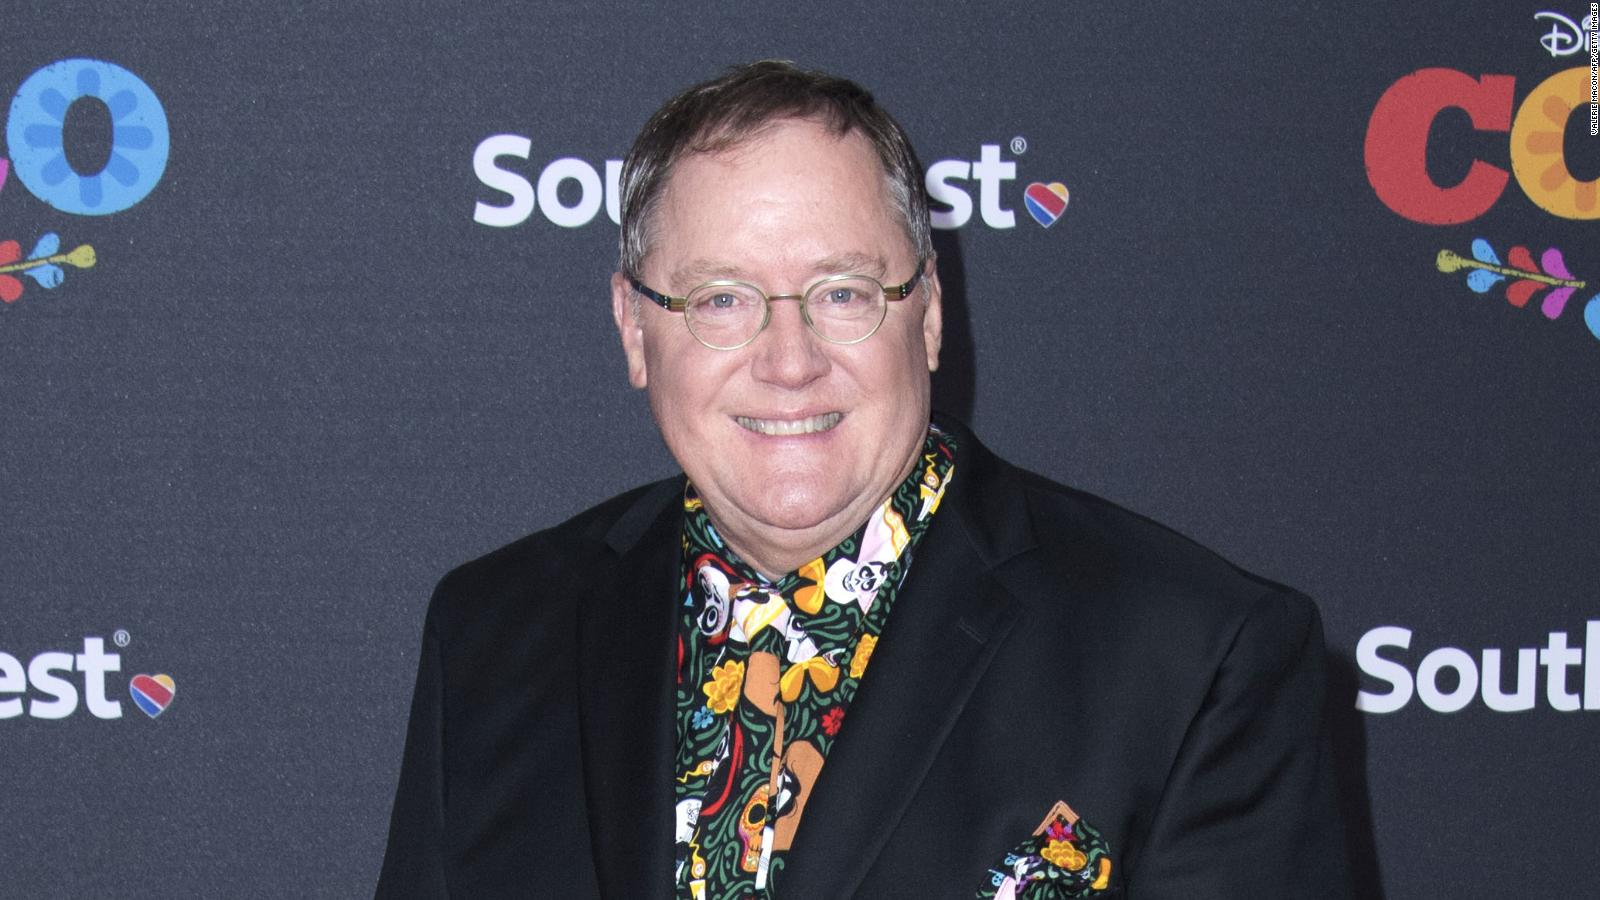 Executive producer John Lasseter attends the Disney Pixar's COCO premiere on November 8, 2017, in Hollywood, California. / AFP PHOTO / VALERIE MACON / ALTERNATIVE CROP         (Photo credit should read VALERIE MACON/AFP/Getty Images)